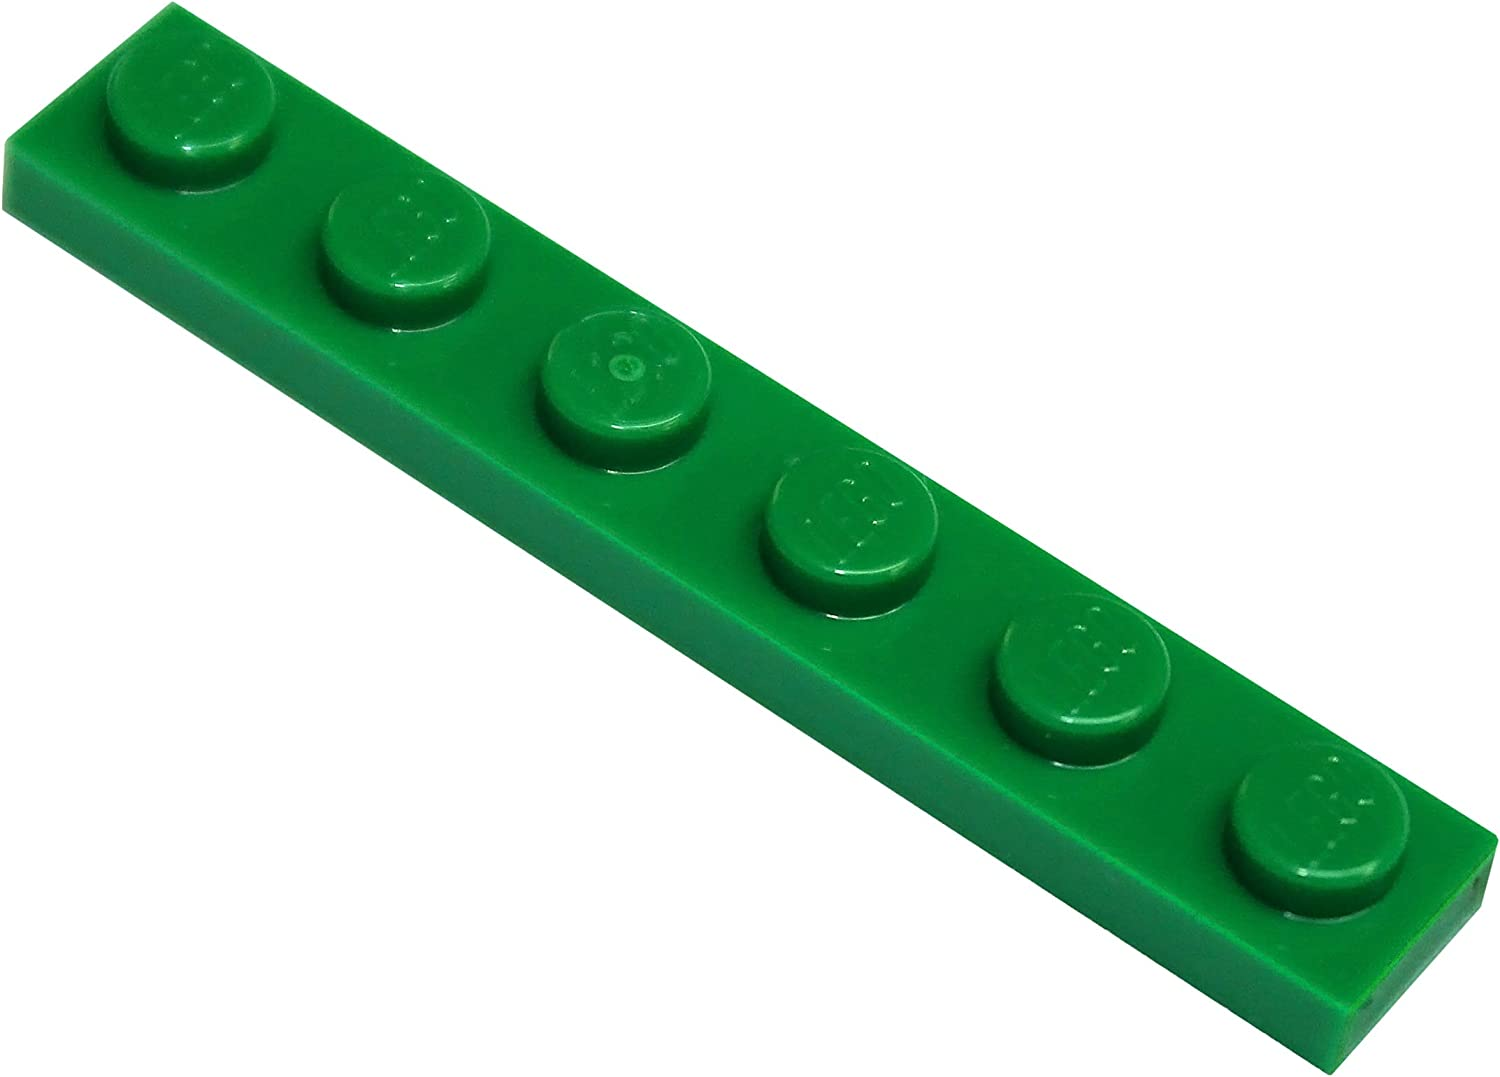 LEGO Parts and Pieces: Green 1x6 Plate x200